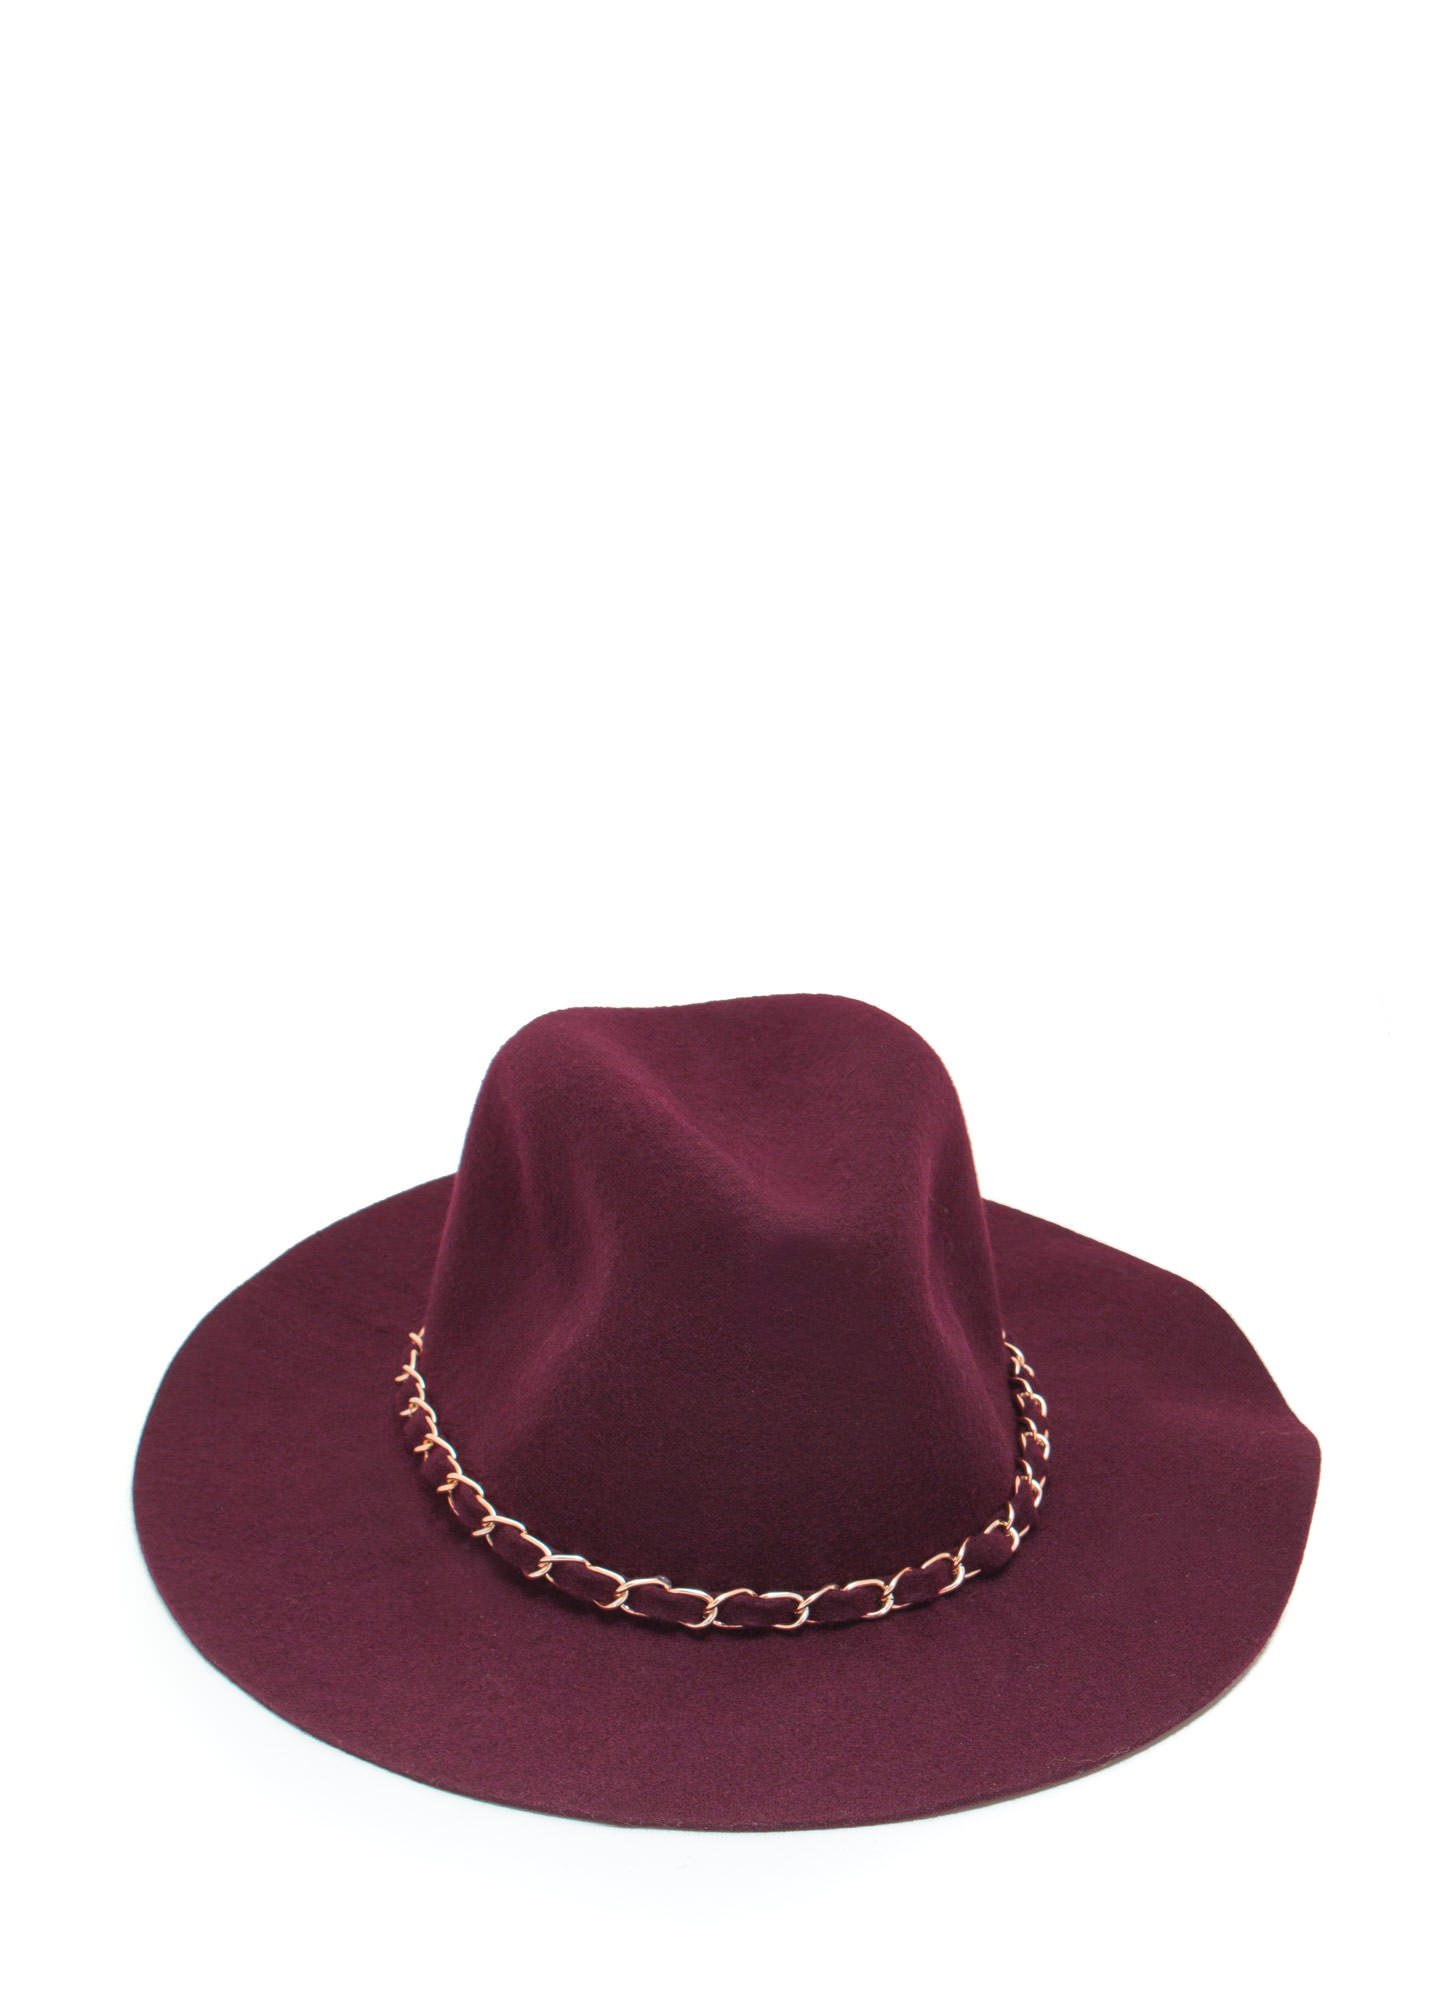 Chain-ge The World Wool Panama Hat BURGUNDY